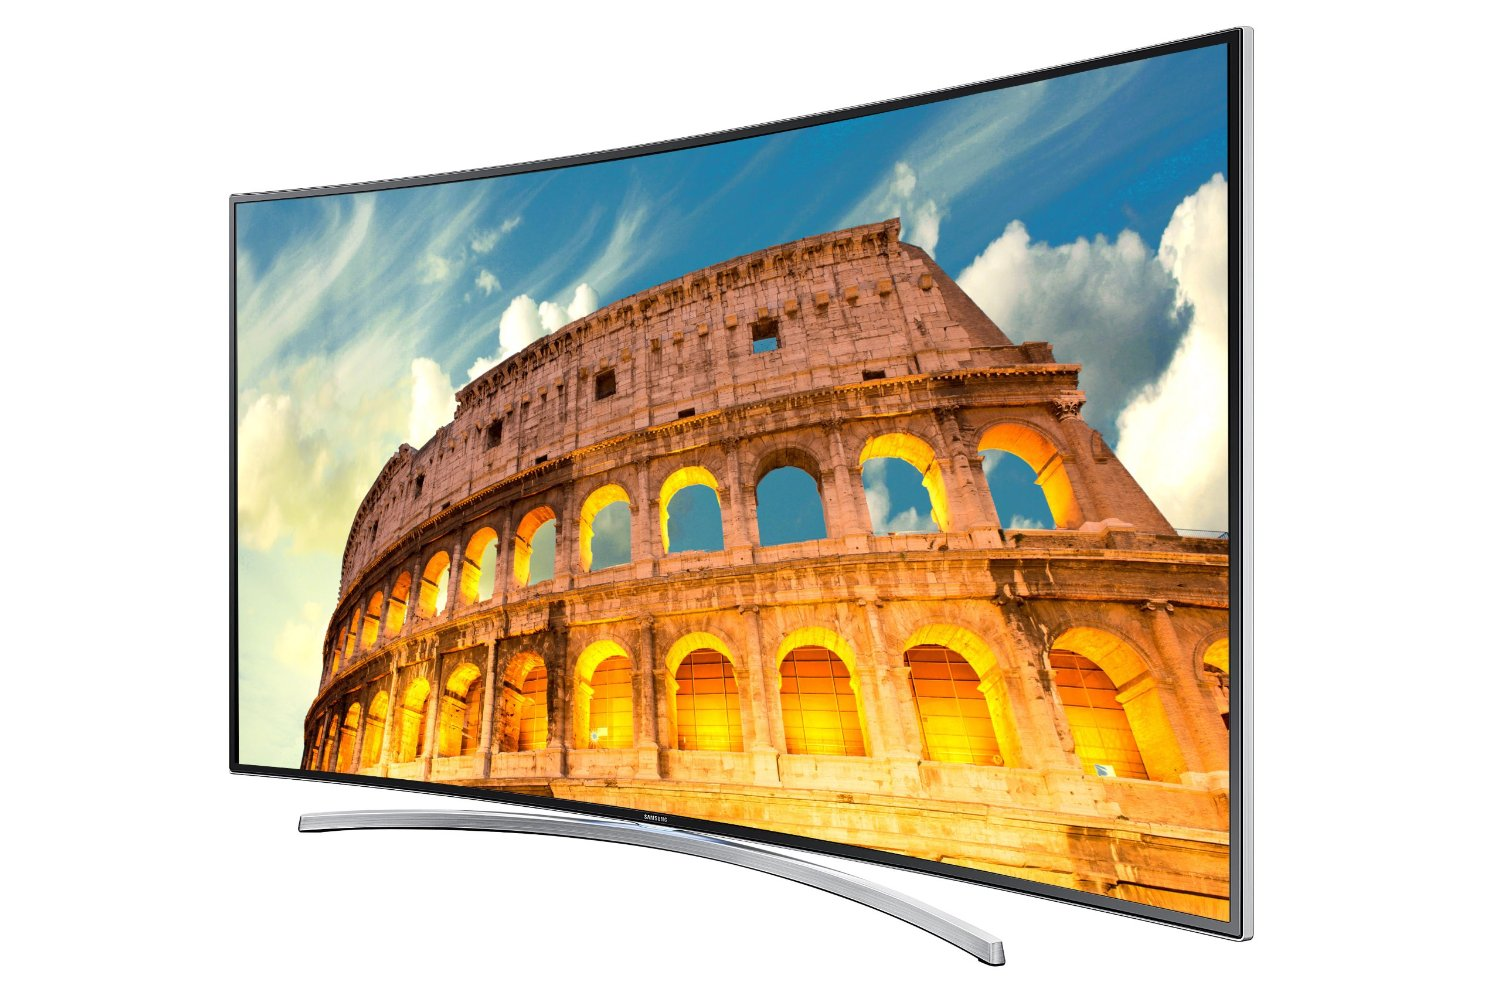 samsung-un55h8000-curved-55-inch-1080p-240hz-3d-smart-led-hdtv-picture4.jpg